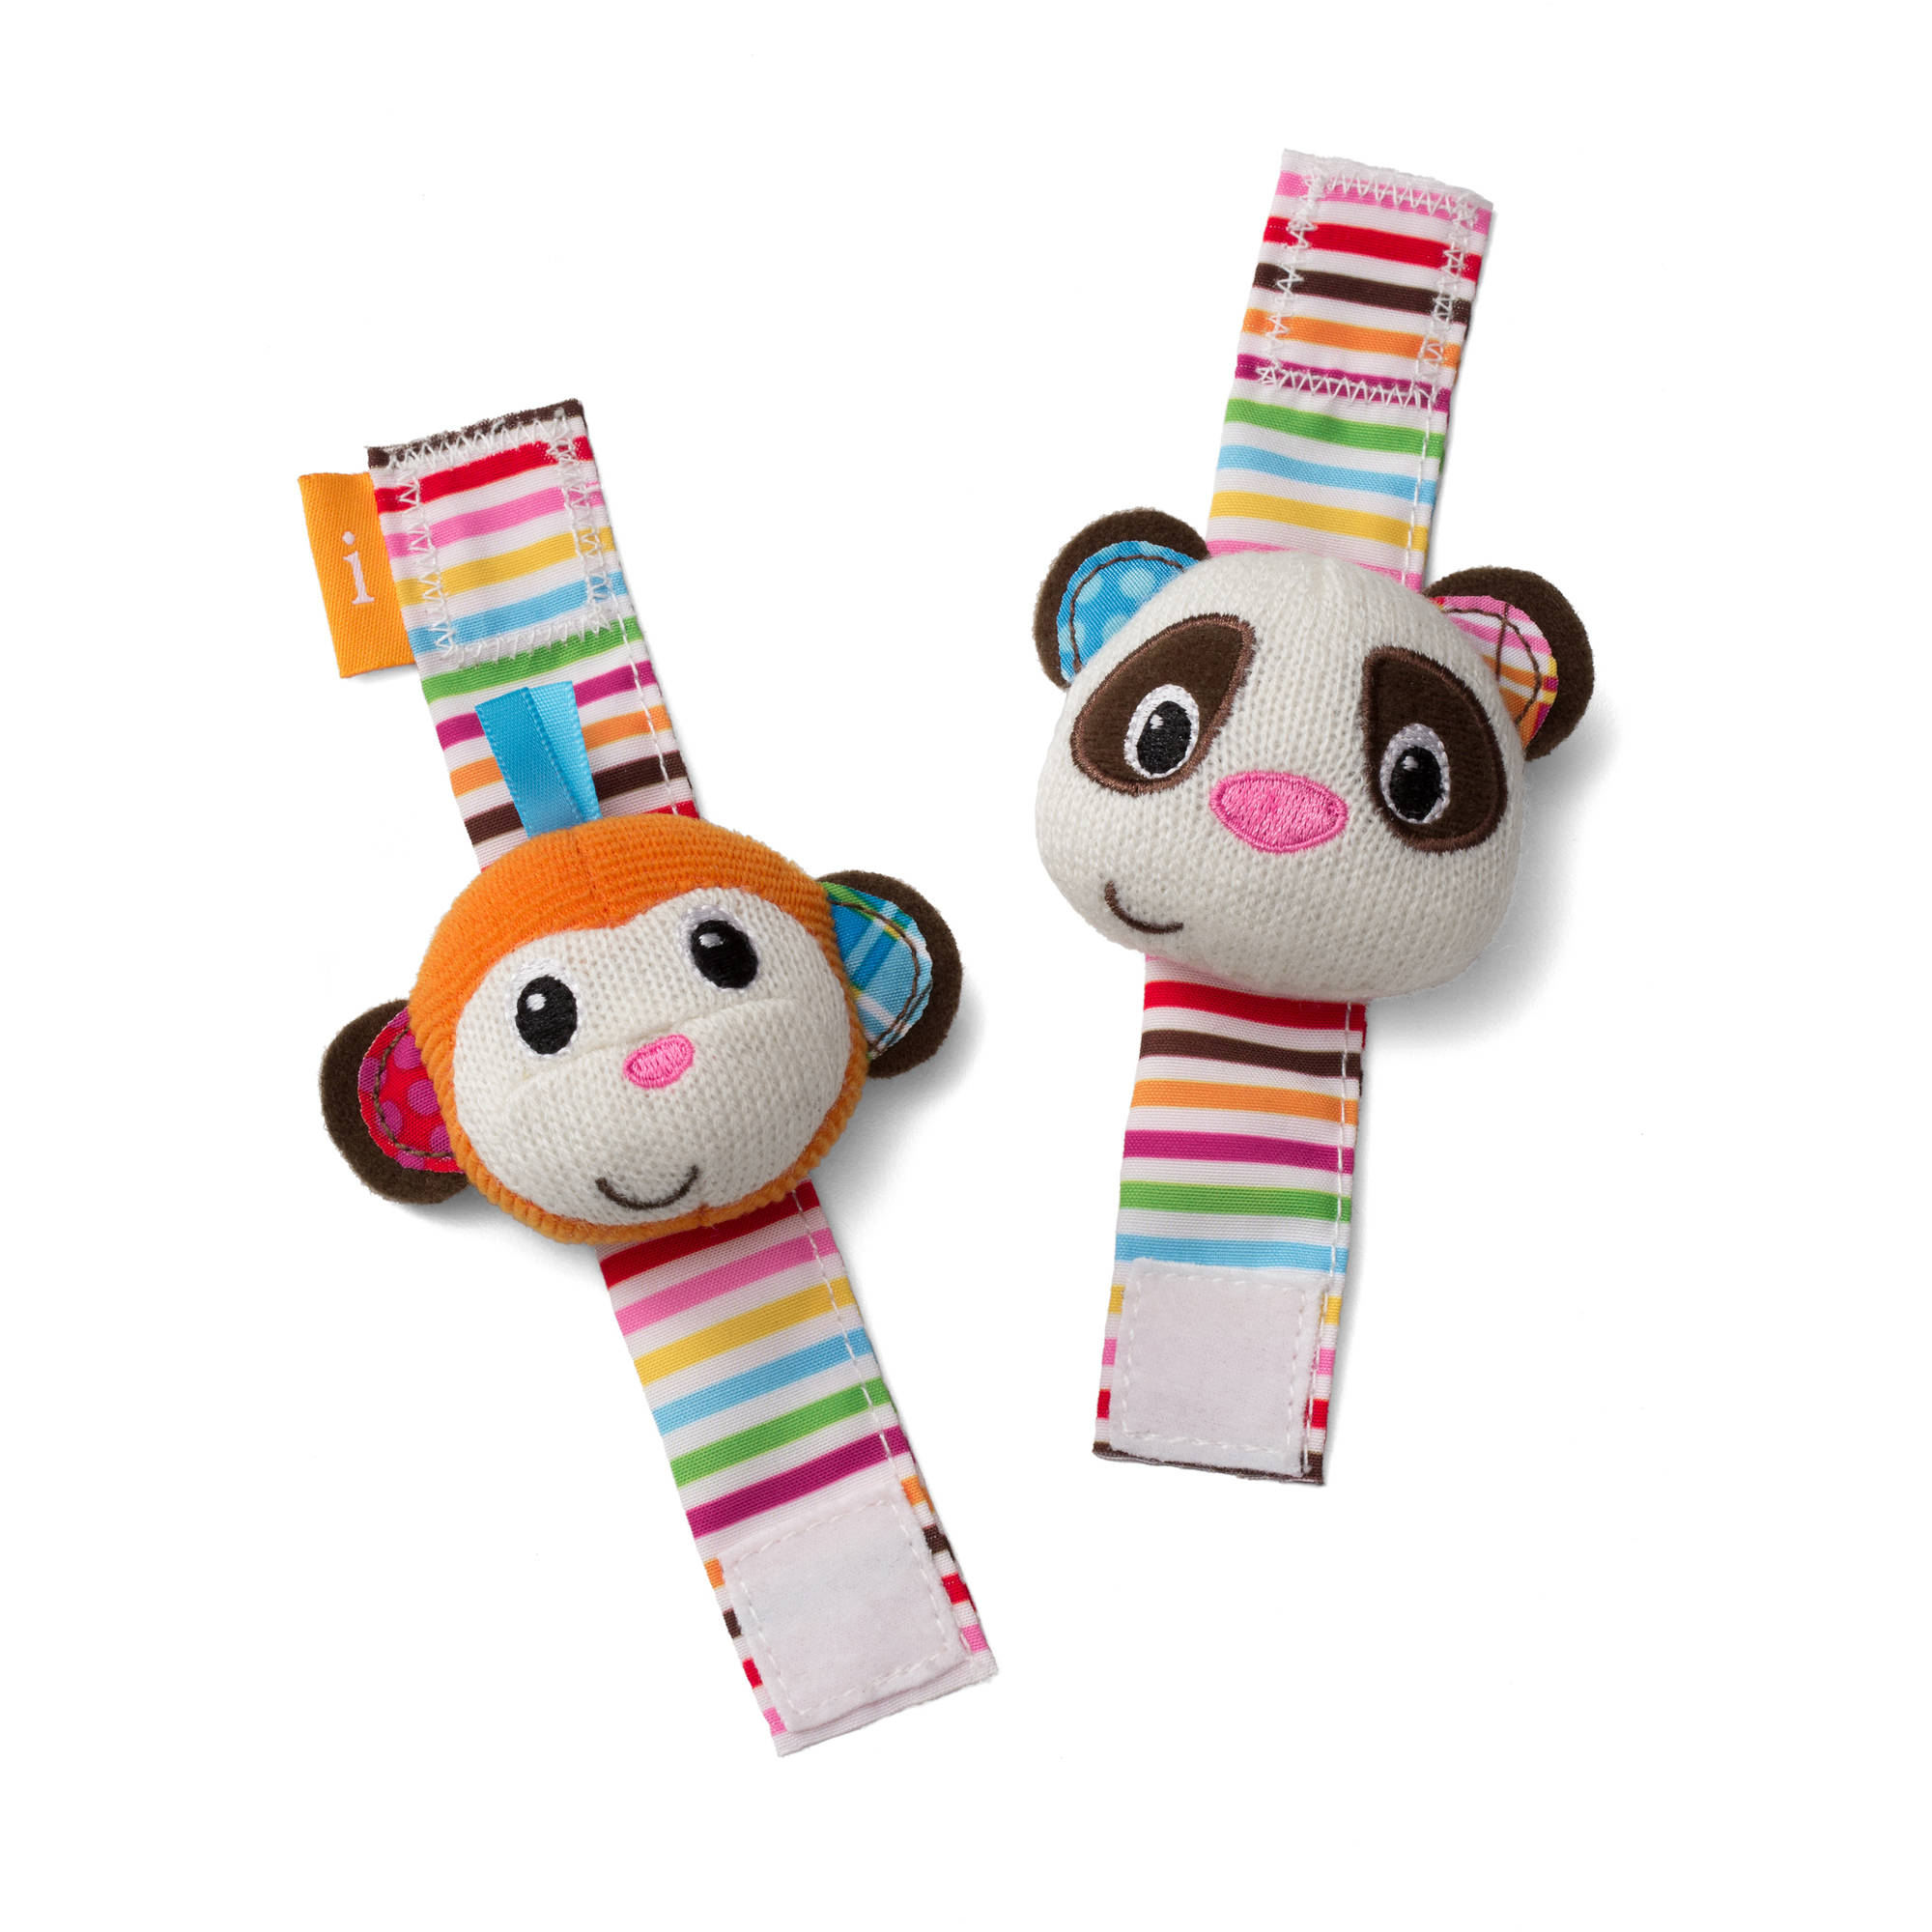 Infantino See Play Go Wrist Rattles, Monkey and Panda by Infantino